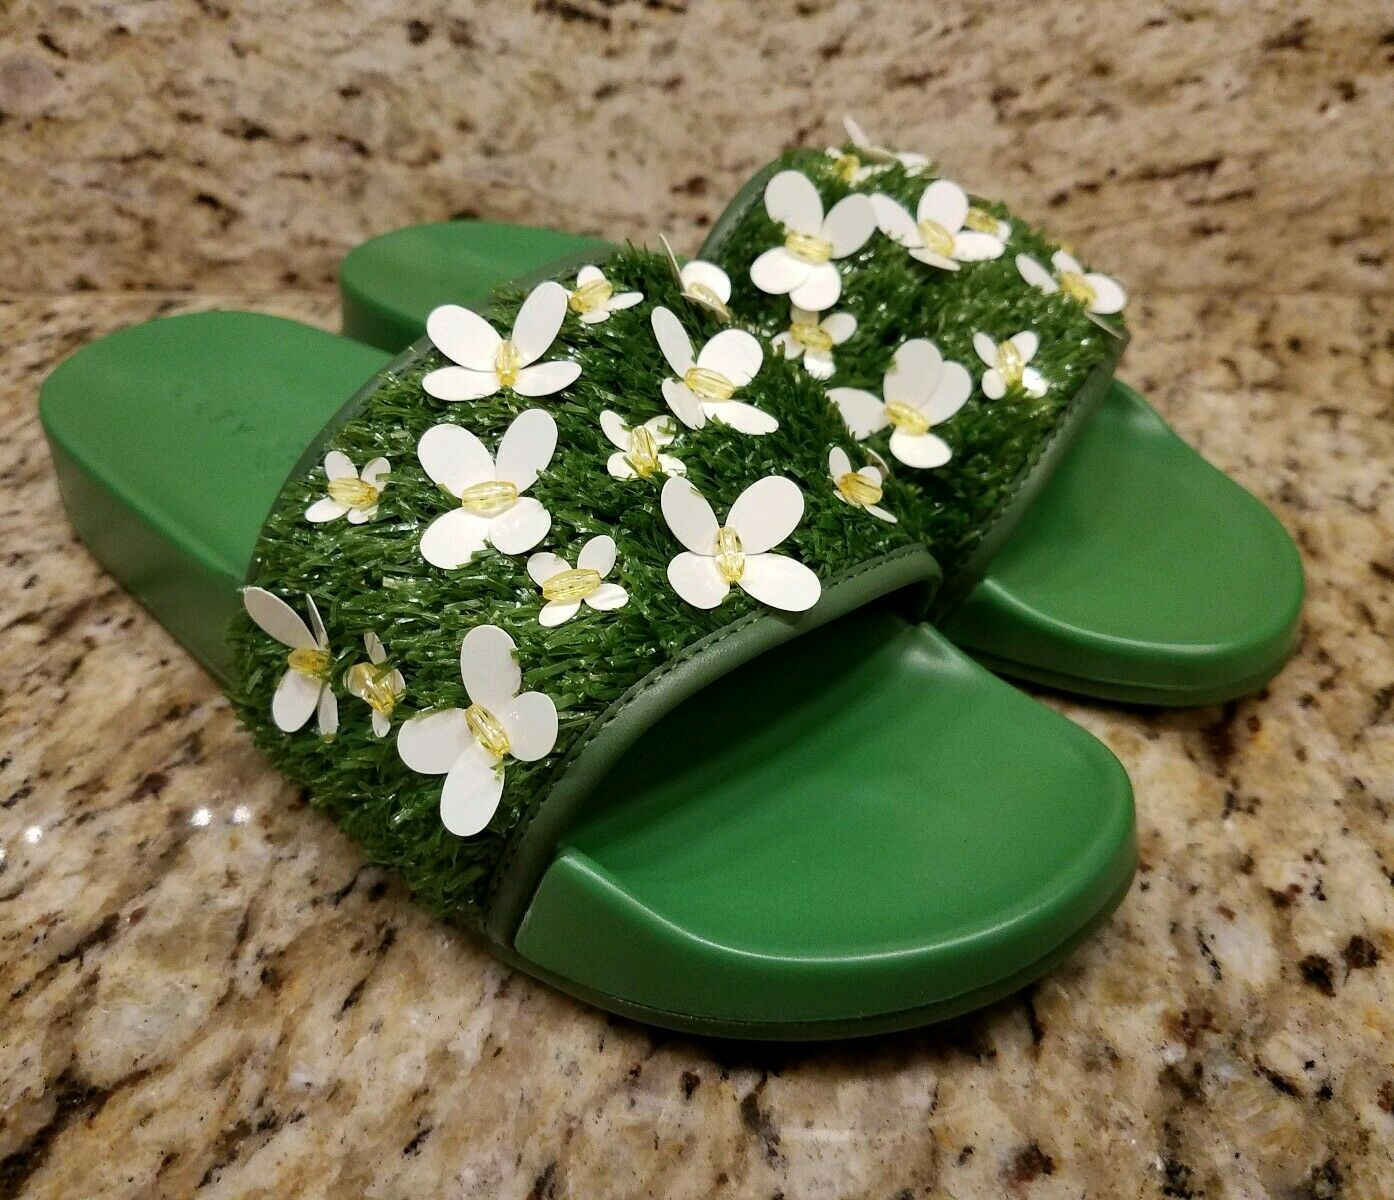 Katy Perry Women's The GEMA Slide Sandal Sandal Sandal Size 6 NEW Green Butterfly 93ae62